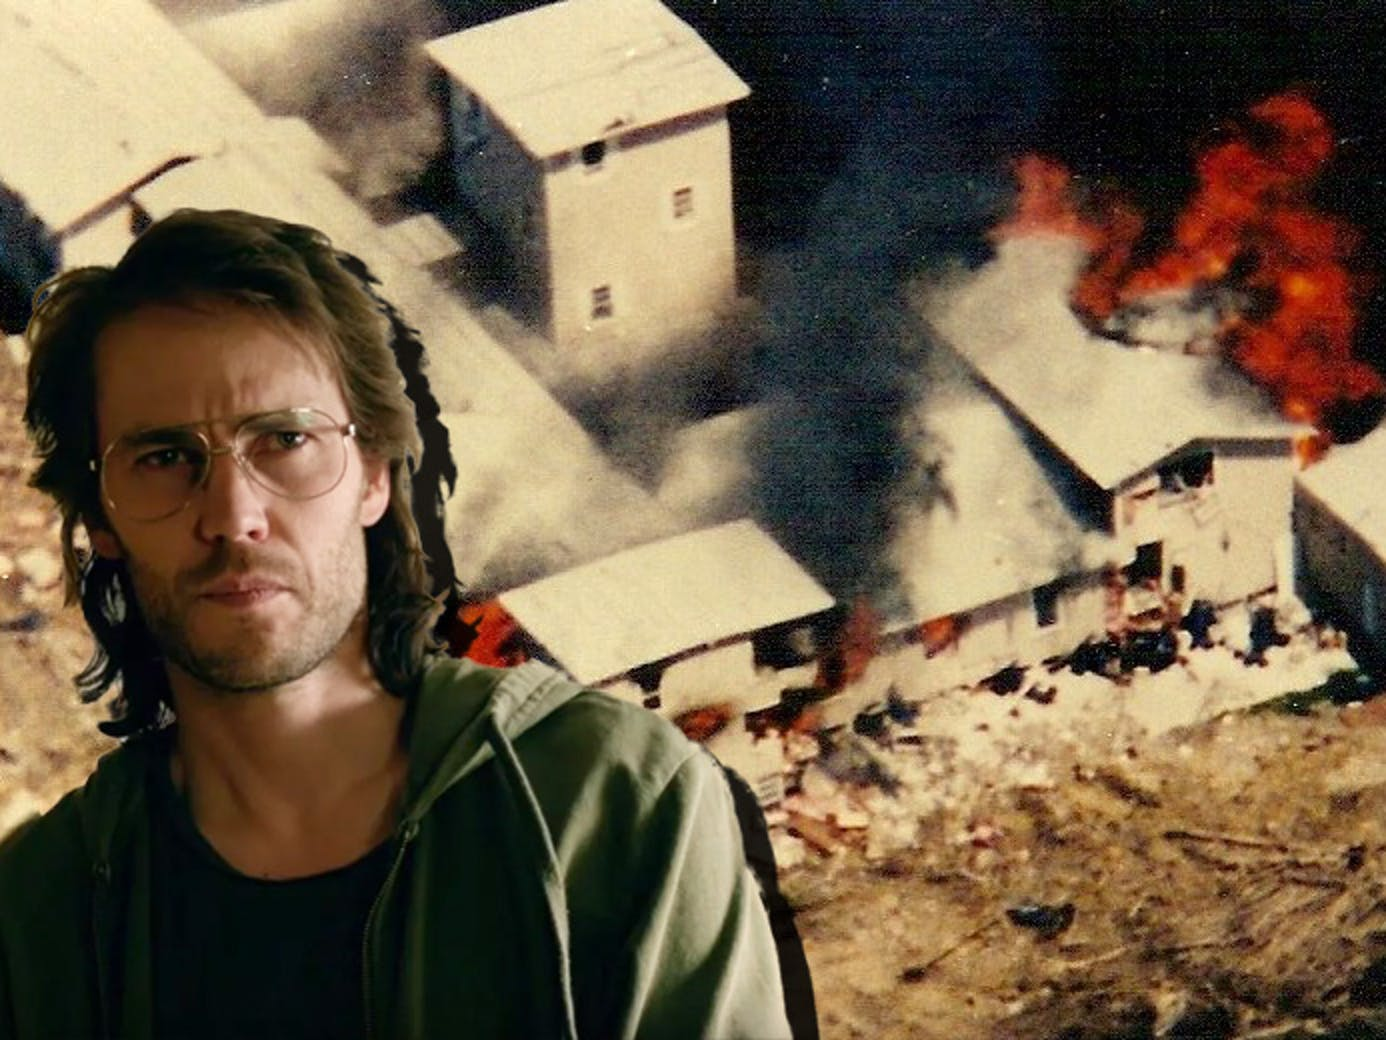 David Koresh in 'Waco'